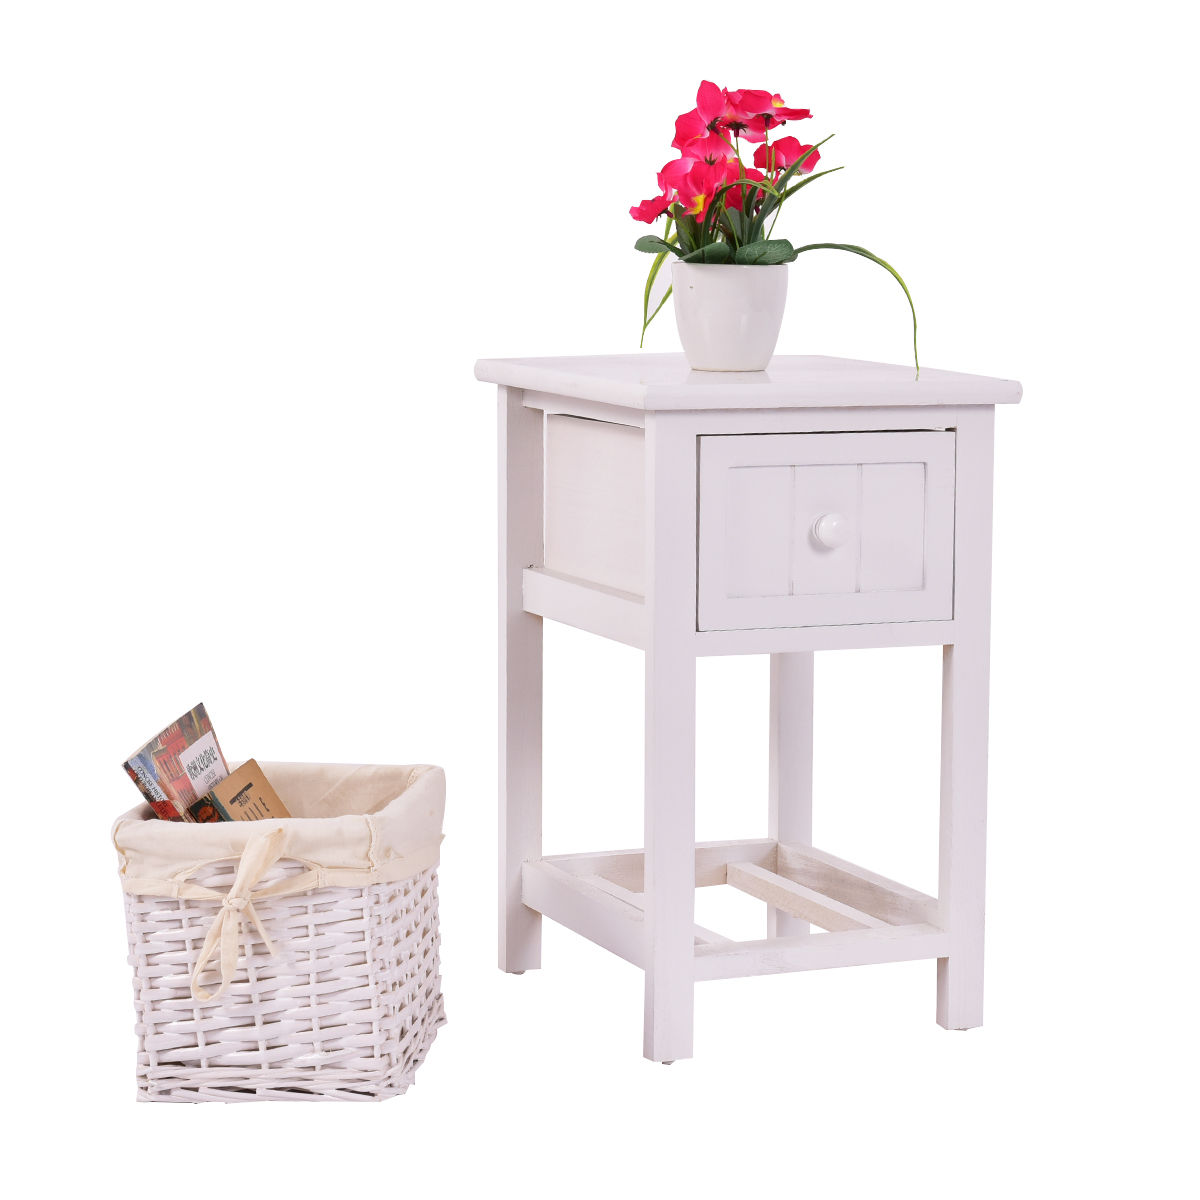 Costway Night Stand 2 Layer 1 Drawer Bedside End Table Organizer Wood W Basket by Costway